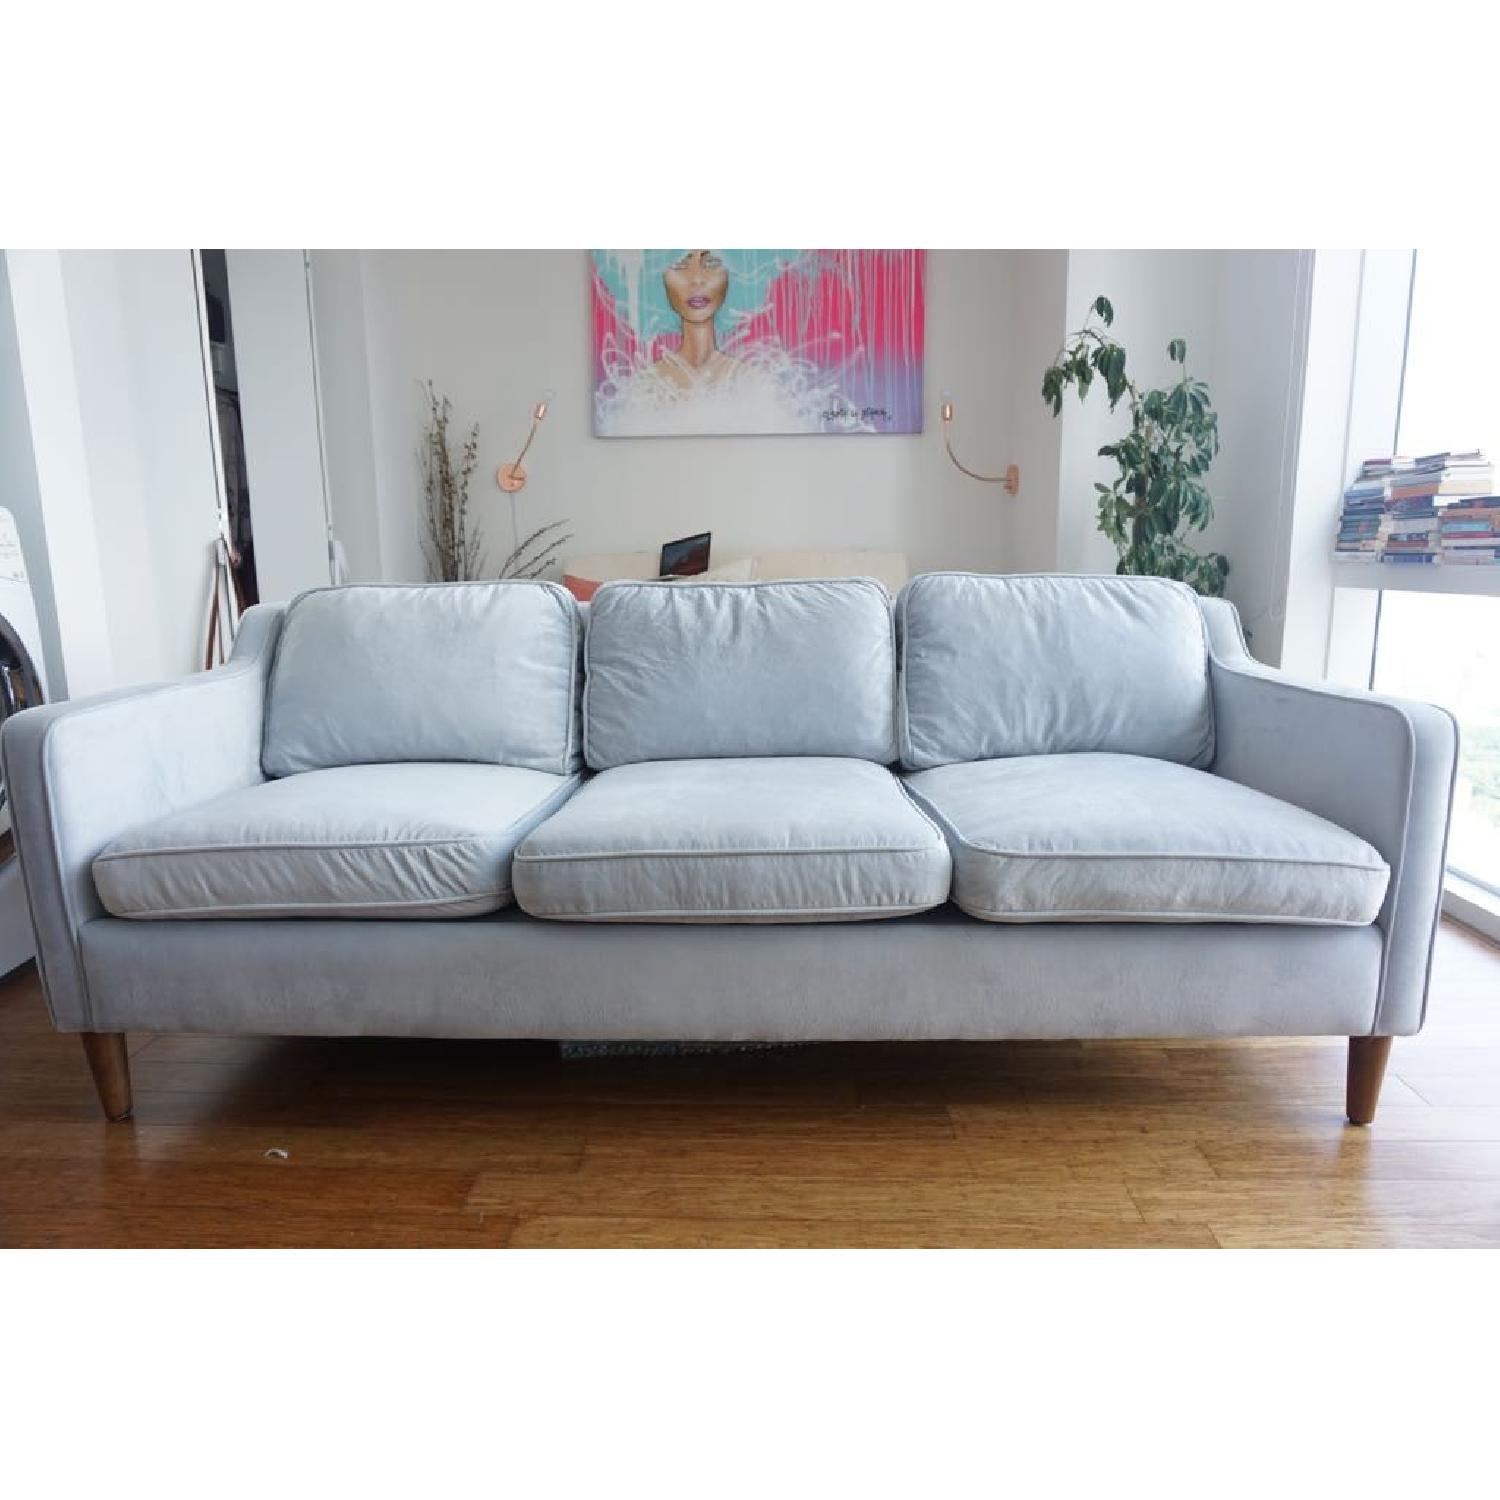 ... West Elm Hamilton Dove Grey 3 Seater Sofa 2